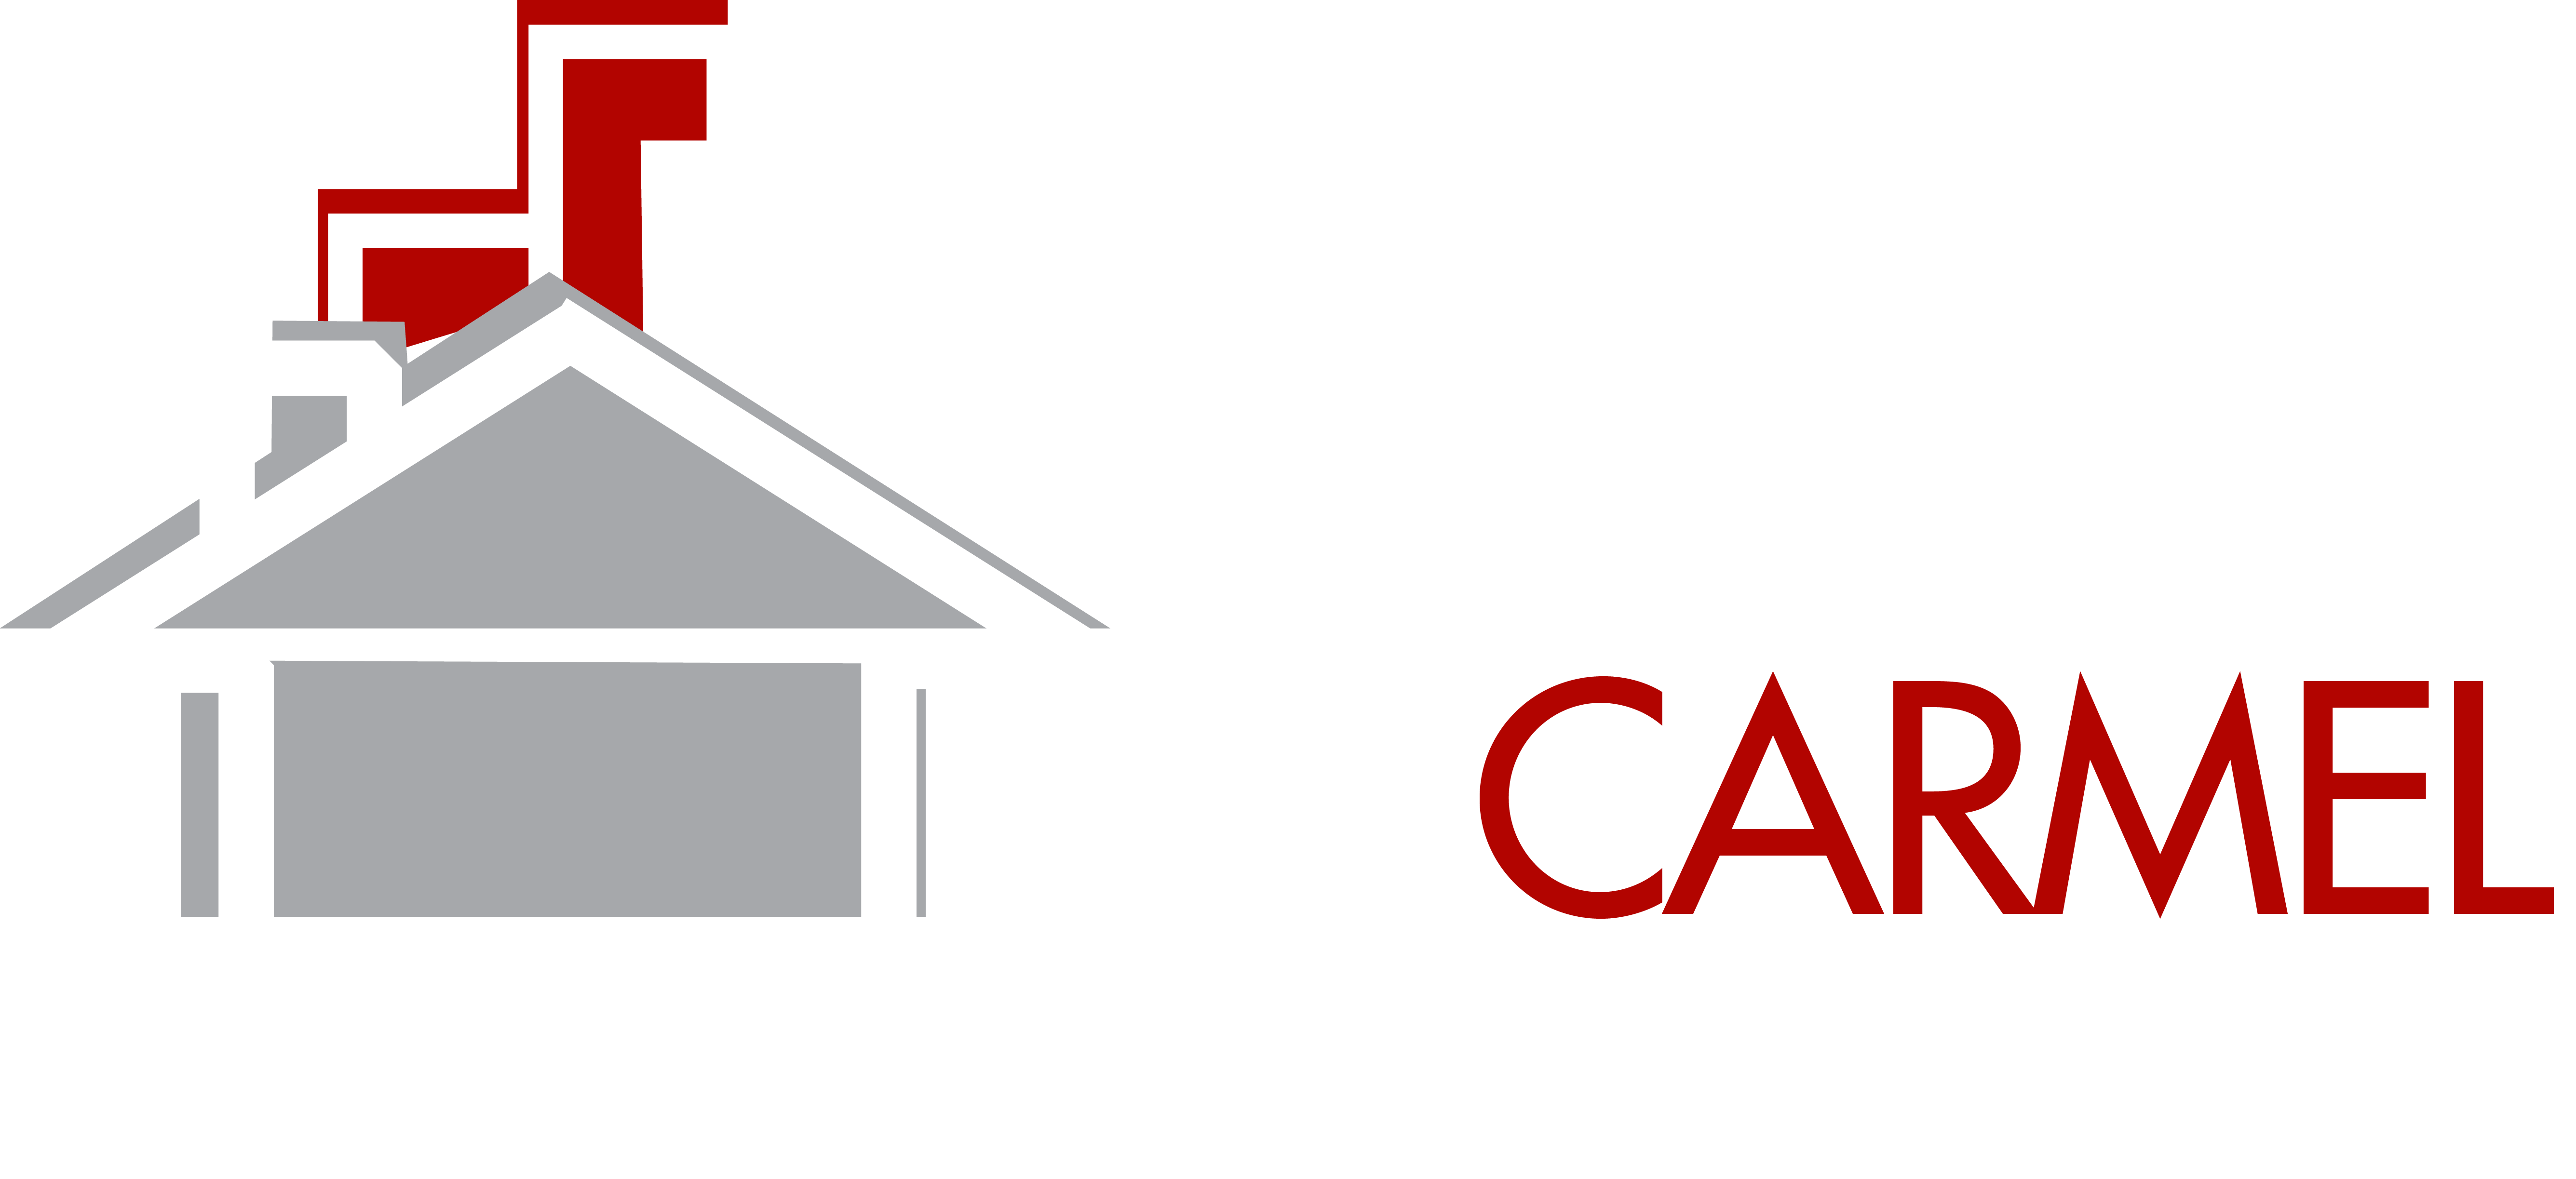 Indianapolis City Homes & Lifestyle - helping you make the right move